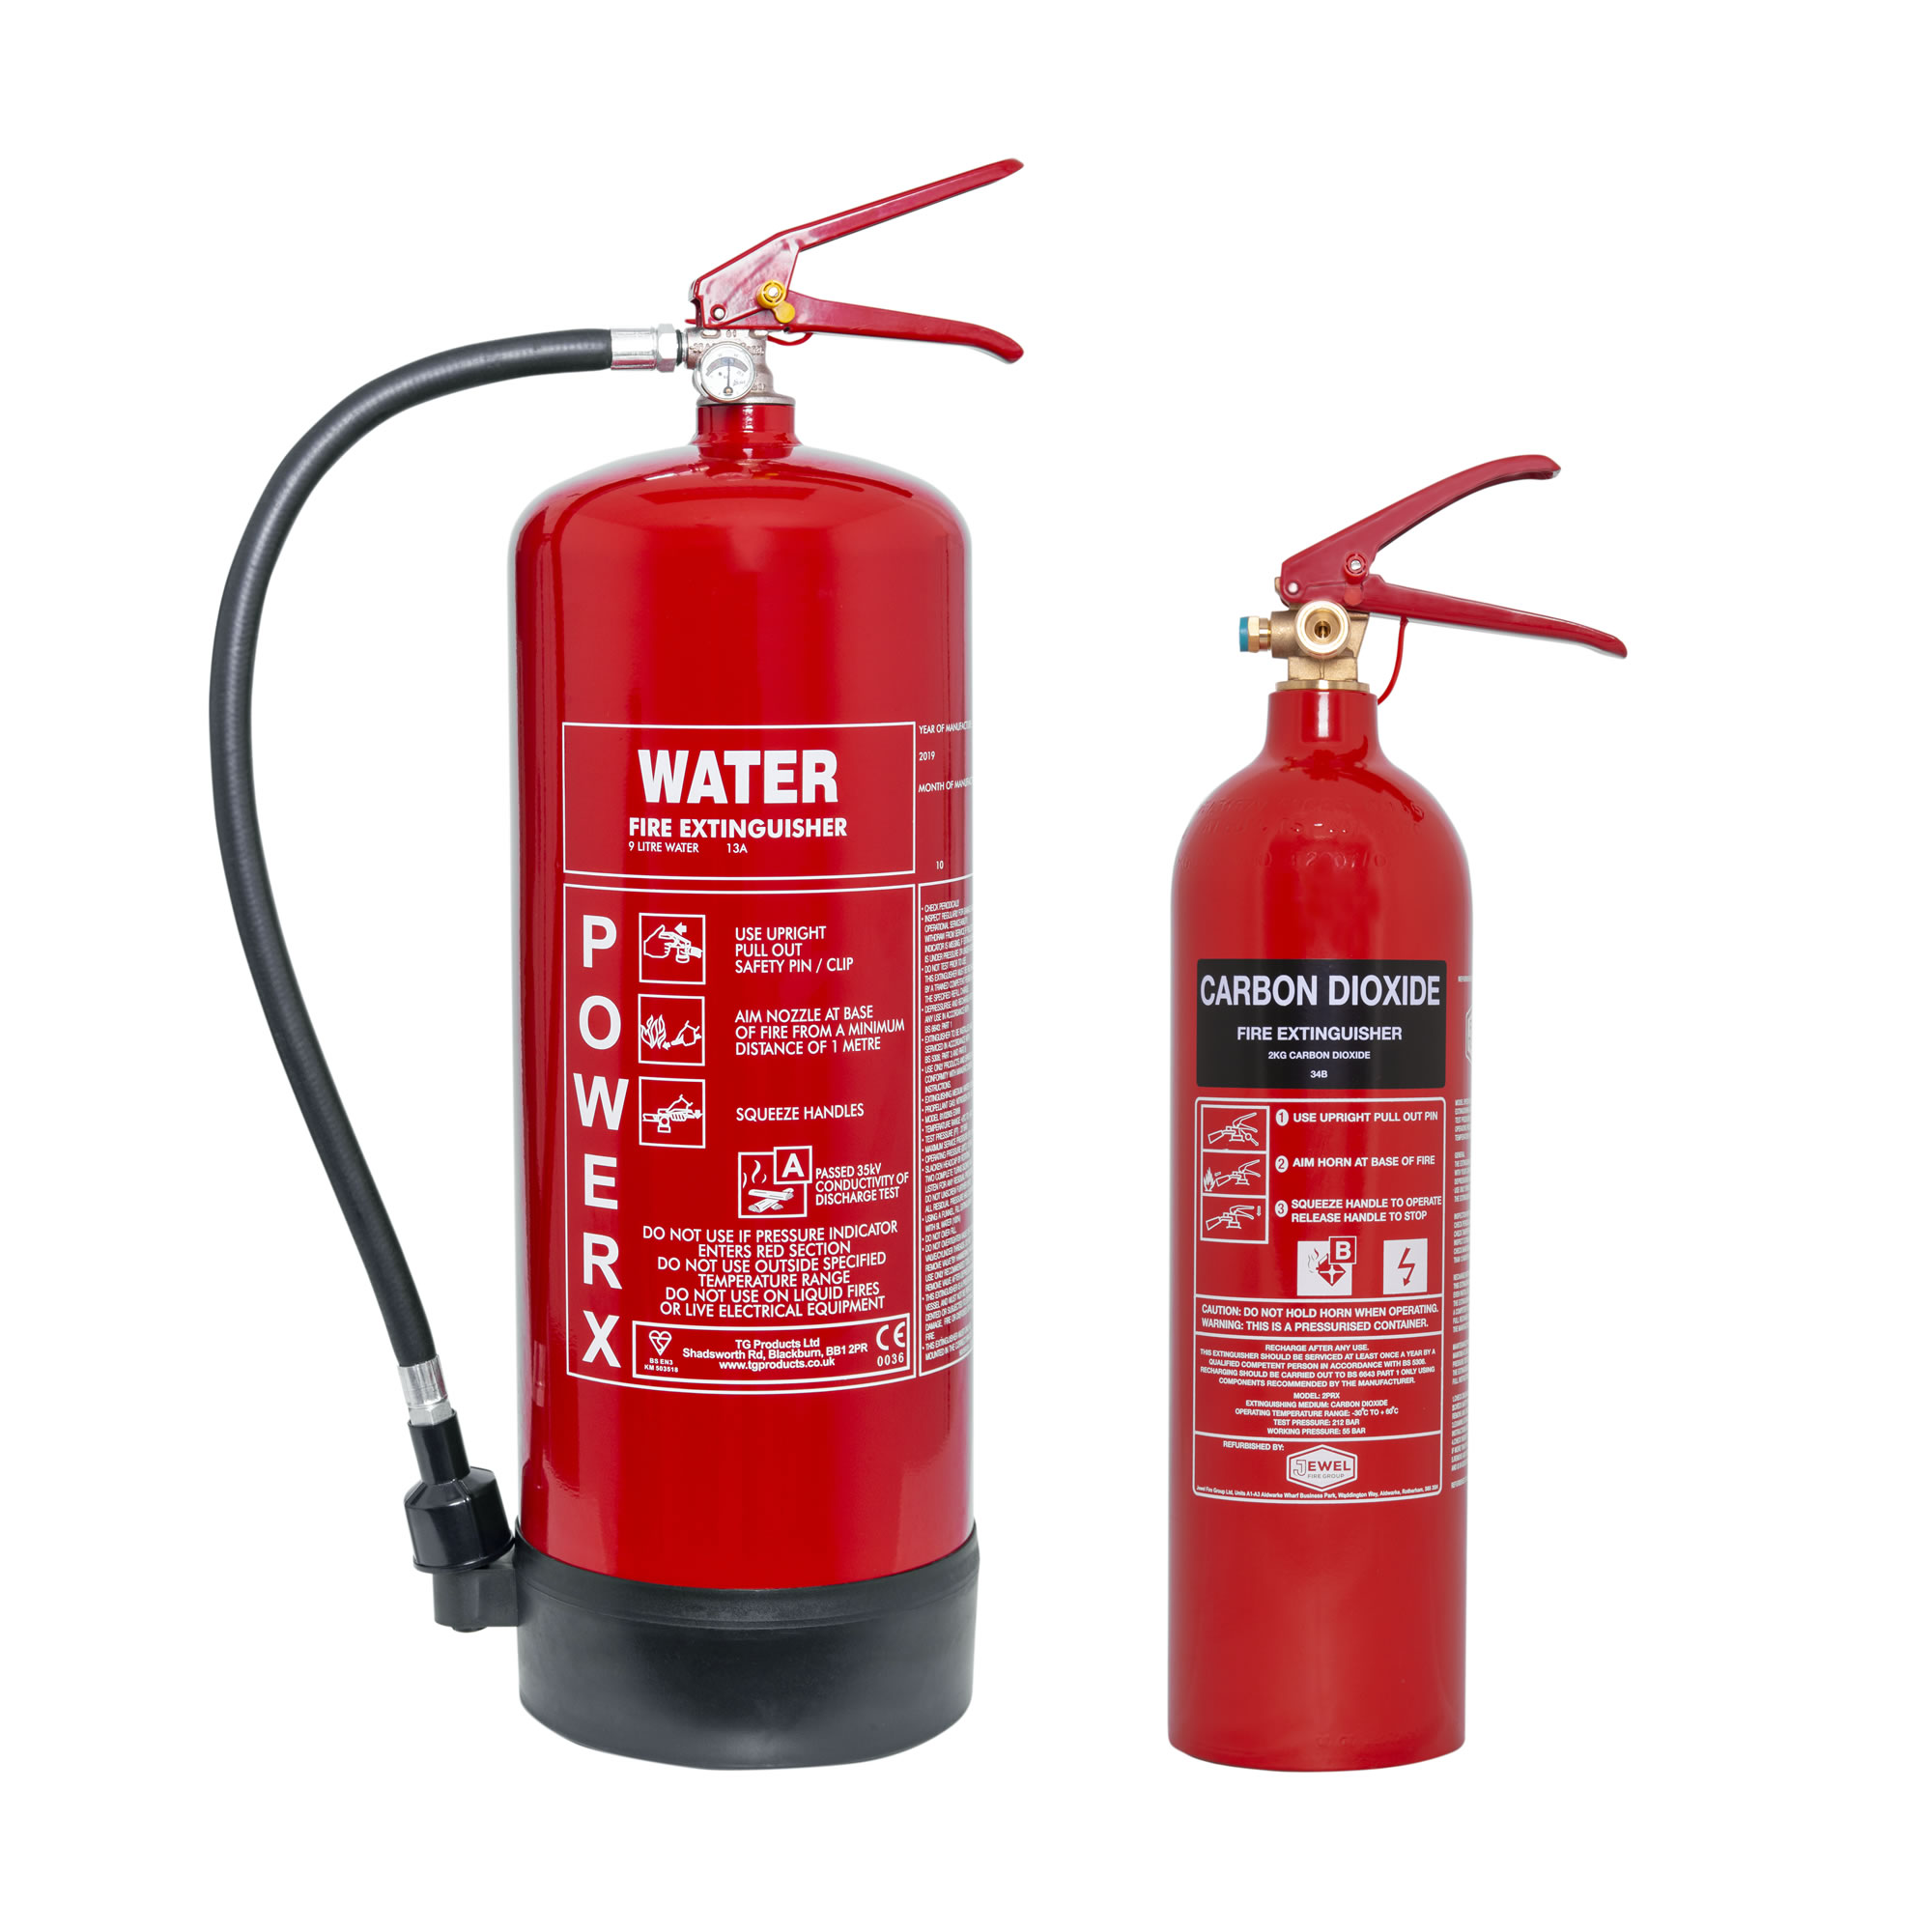 2kg CO2 + 9ltr Water Fire Extinguisher Special Offer